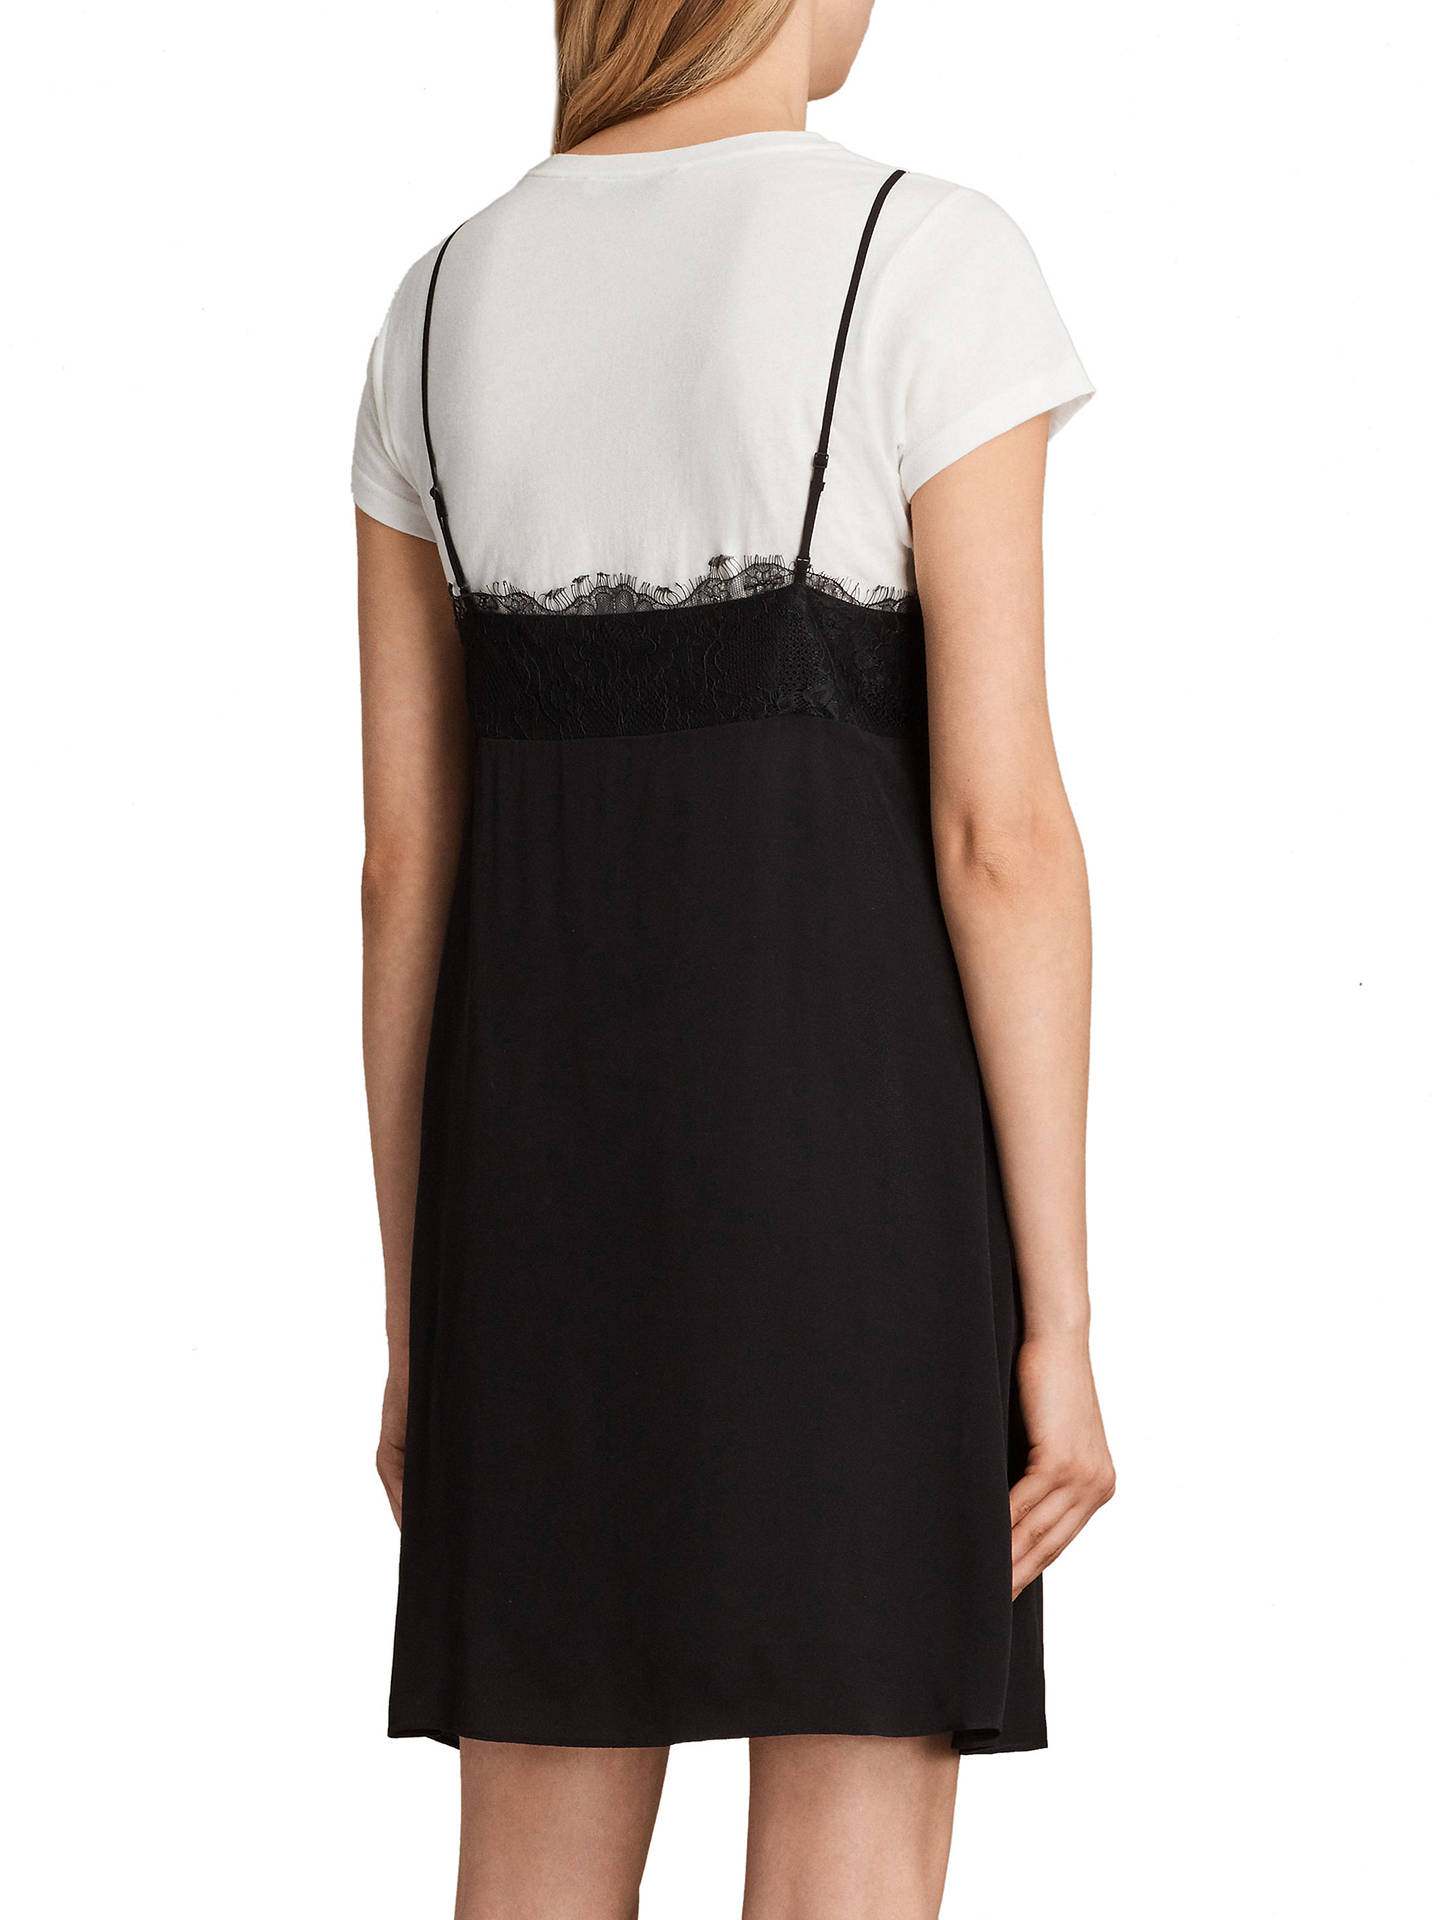 e54963051dc6 ... Buy AllSaints Ives Dress, Black, XS Online at johnlewis.com ...